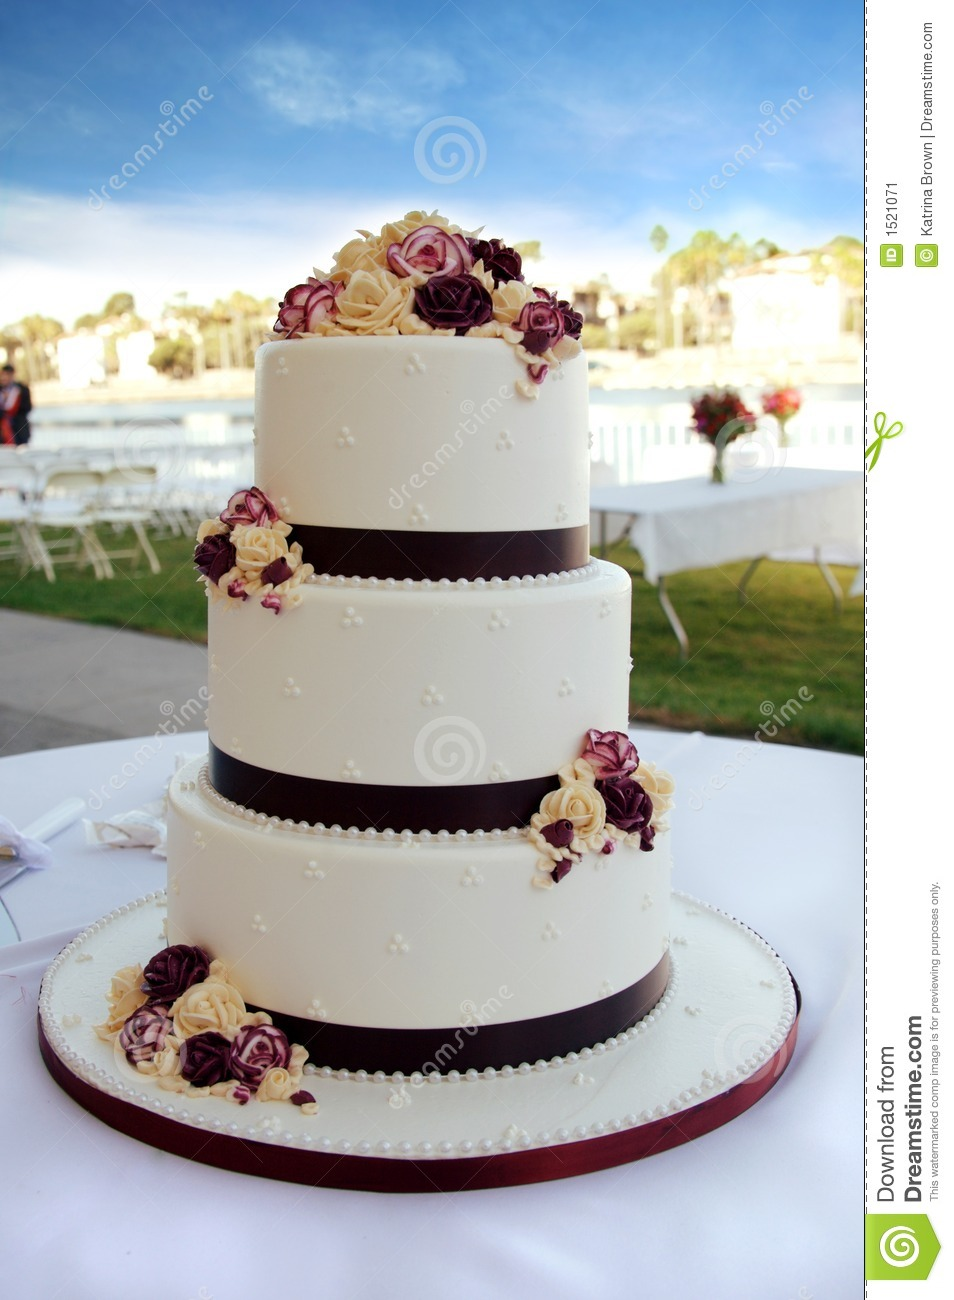 beautiful wedding cakes photos beautiful wedding cake stock image image of 11225